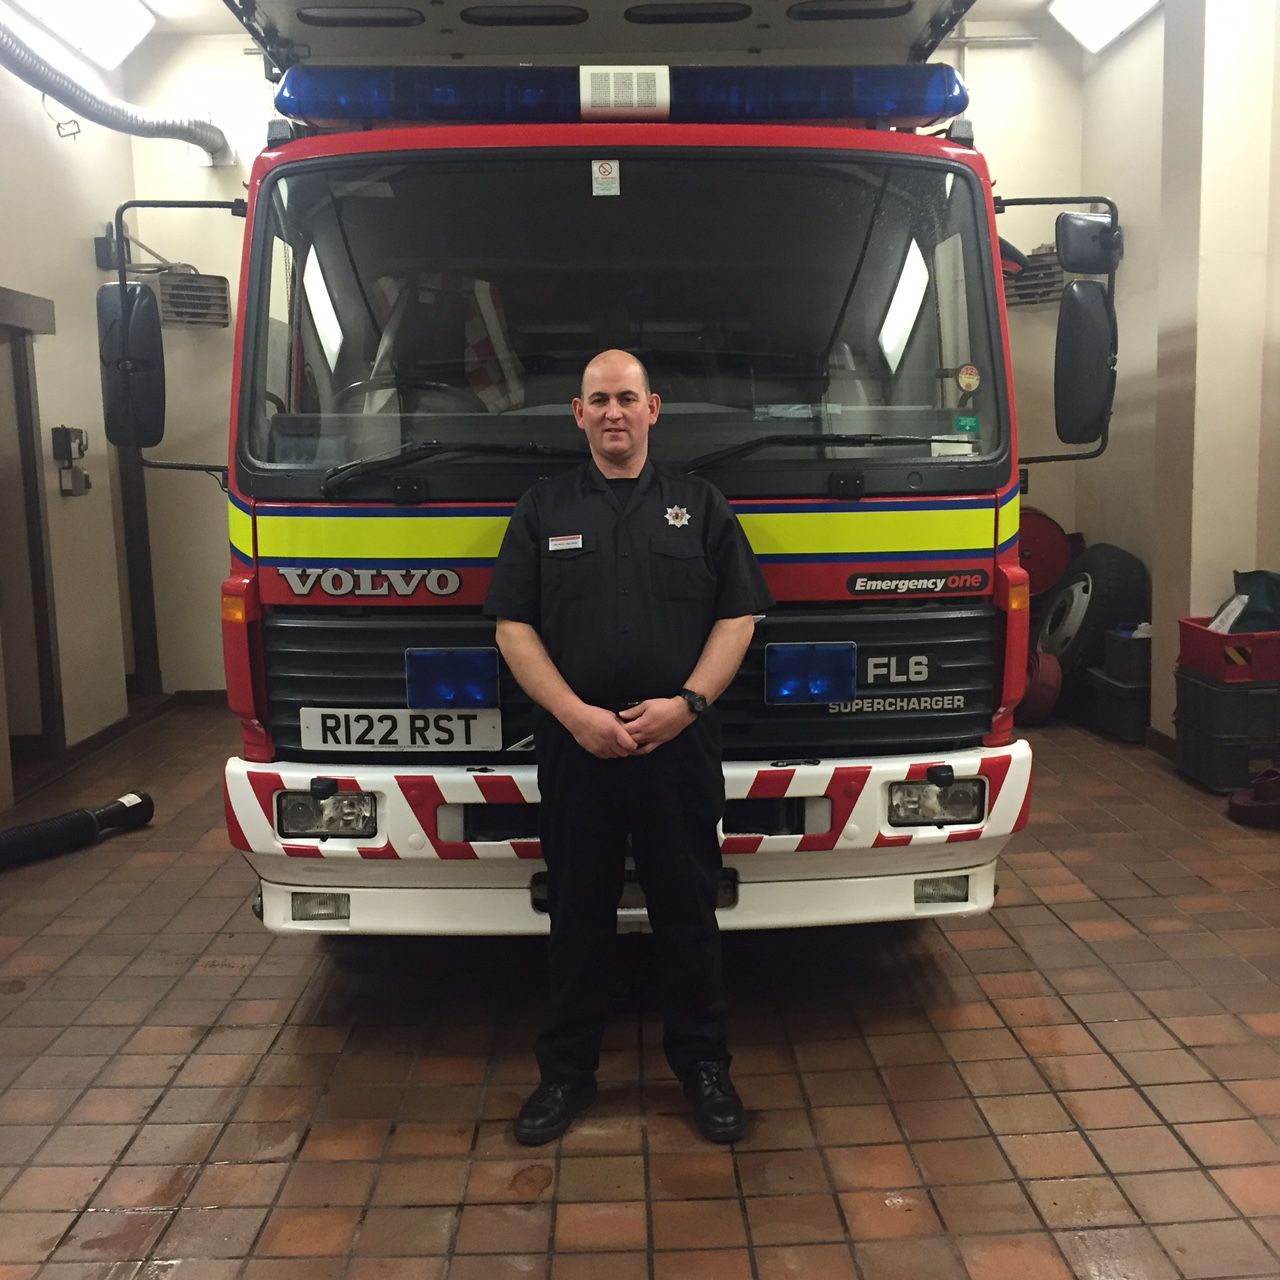 Retained firefighter's quick thinking and training helped save cardiac arrest man's life